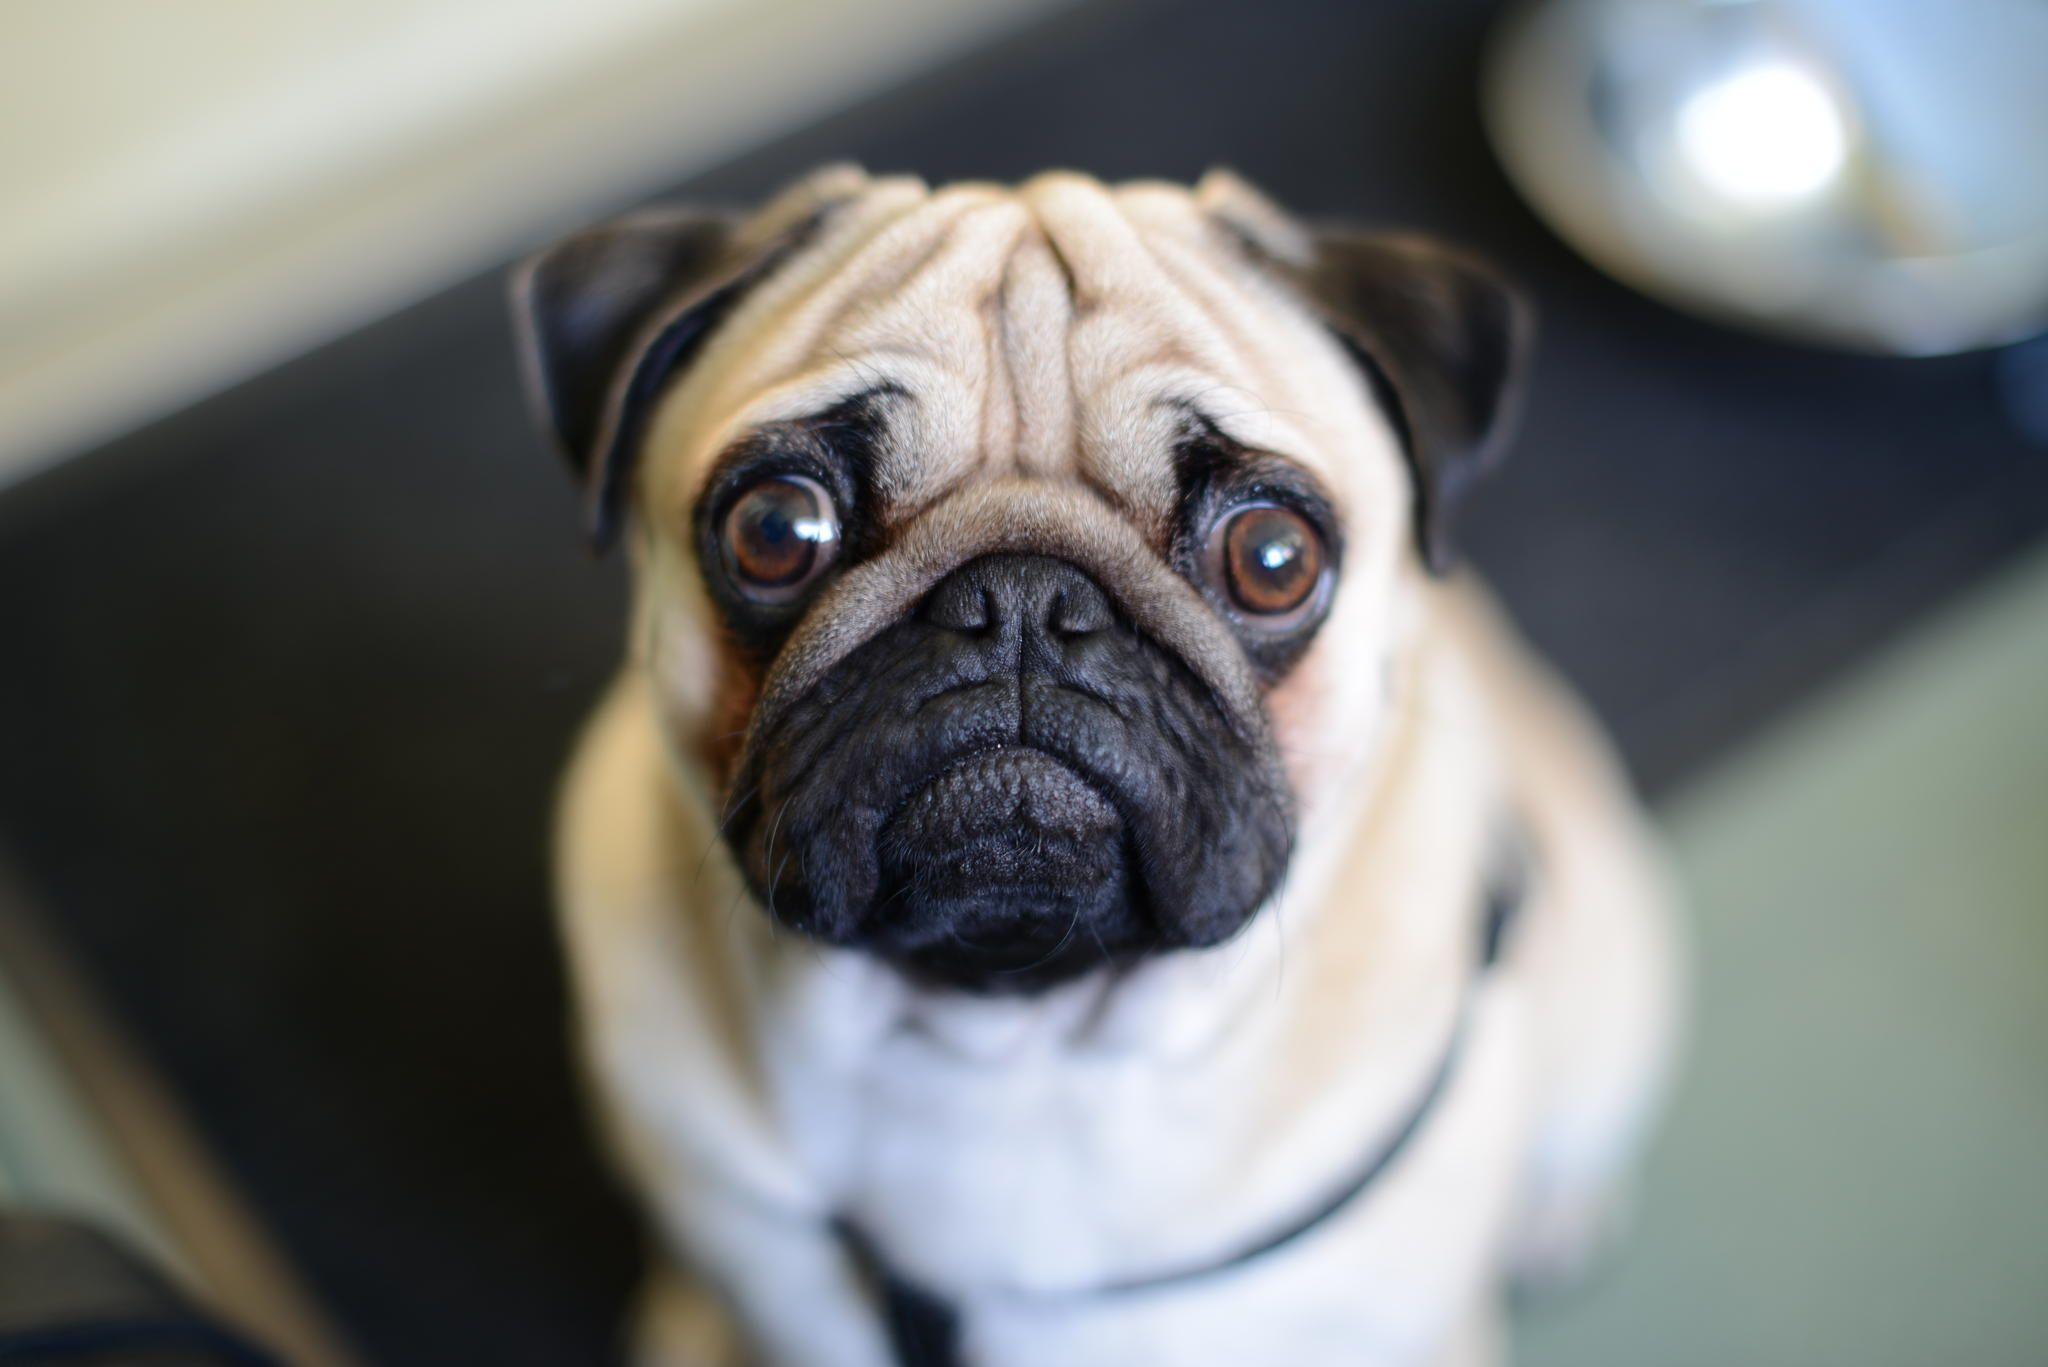 Gryts the pug - null